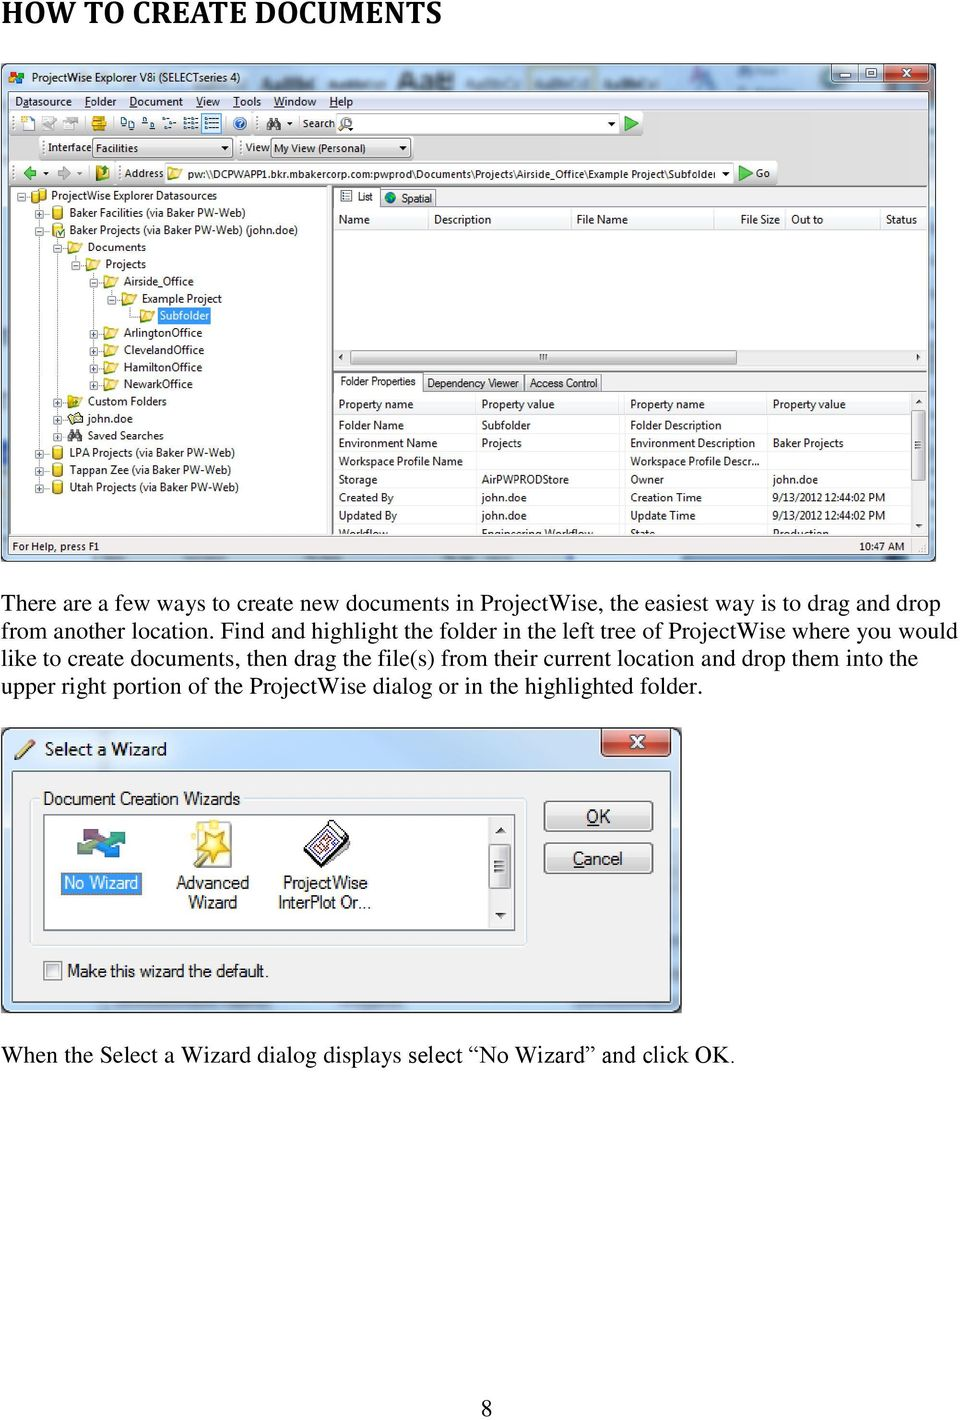 Find and highlight the folder in the left tree of ProjectWise where you would like to create documents, then drag the